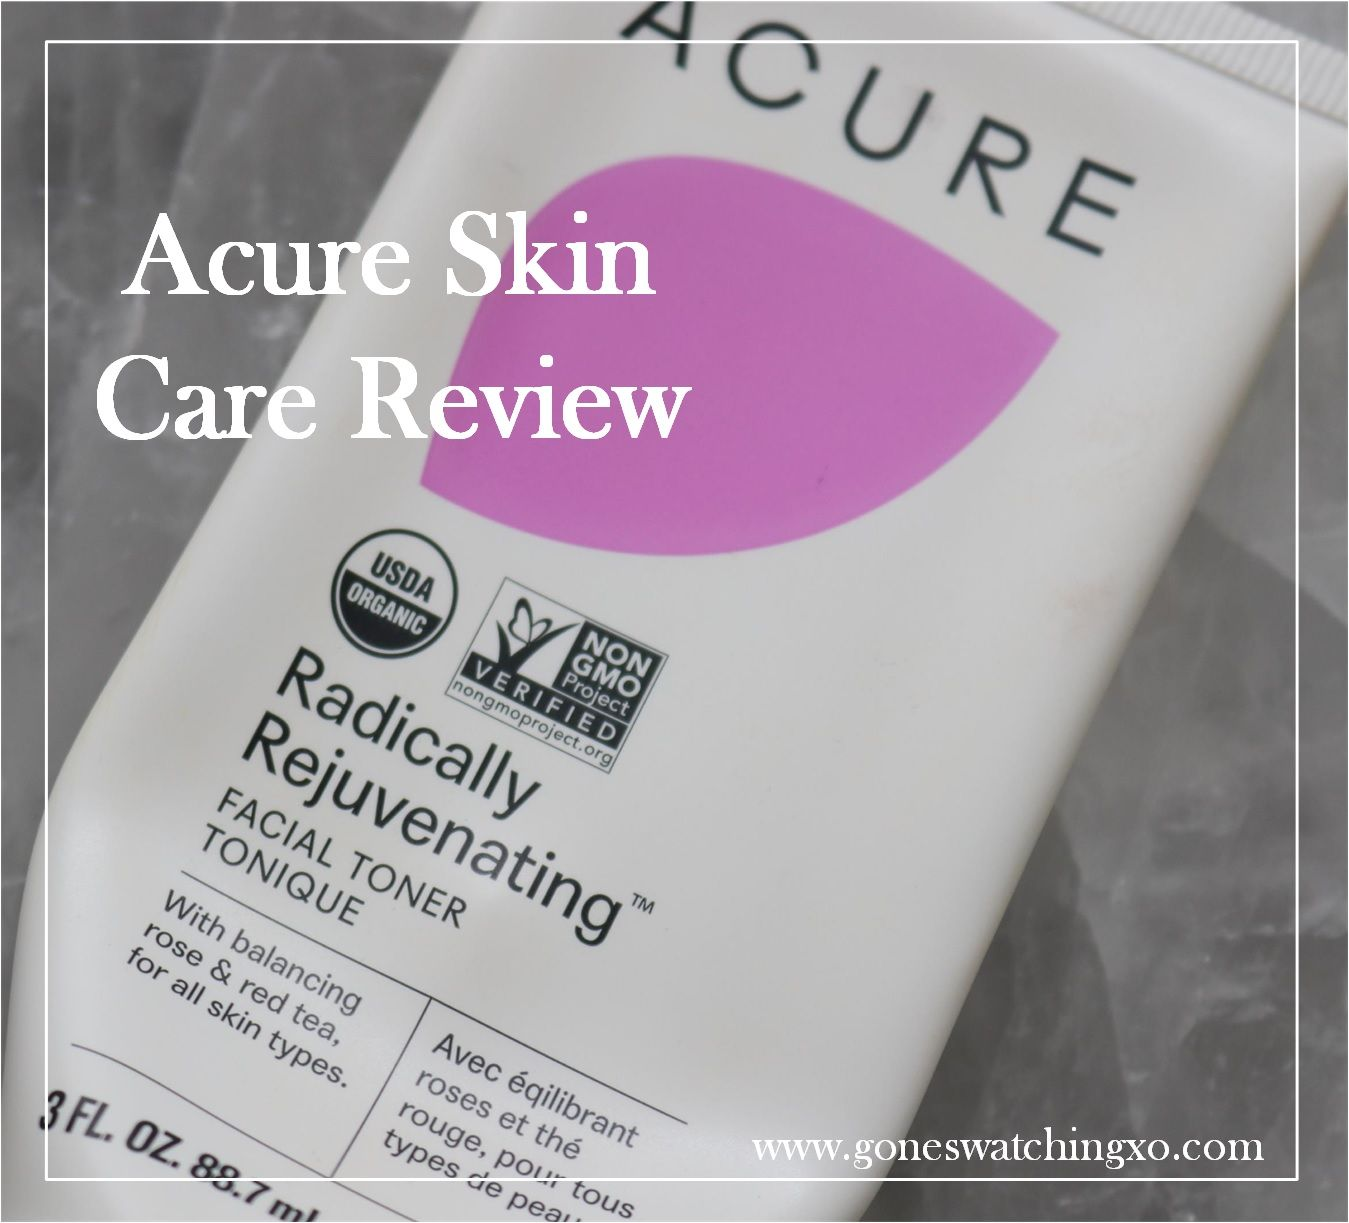 Acure Skin Care Review. Radically Rejuvenating Facial